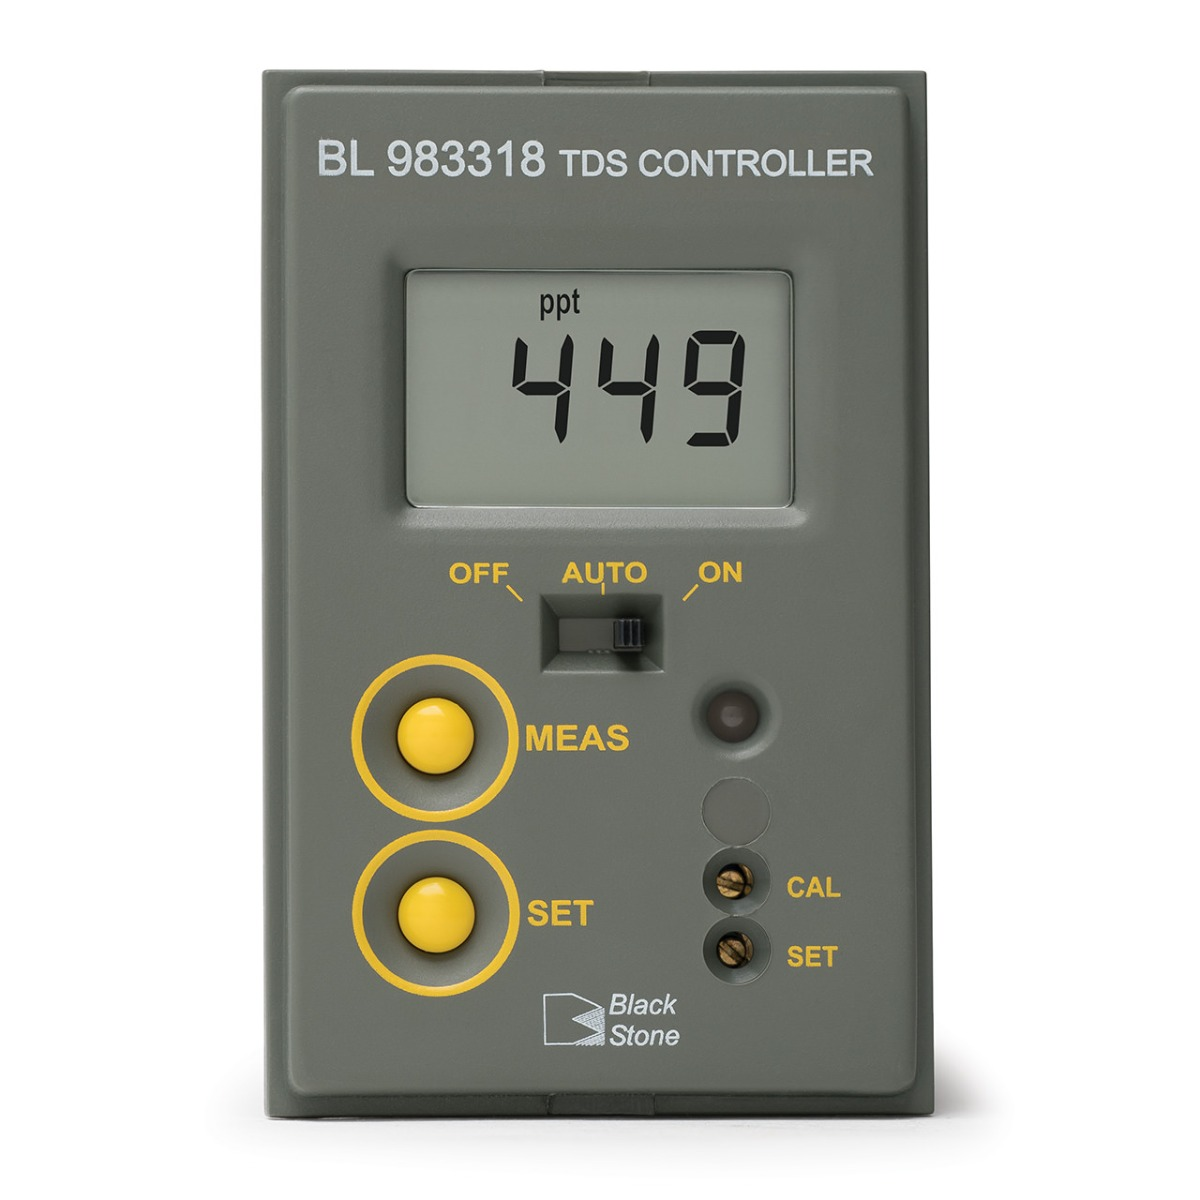 TDS Mini Controller (0.00 to 10.00 ppt) - BL983318